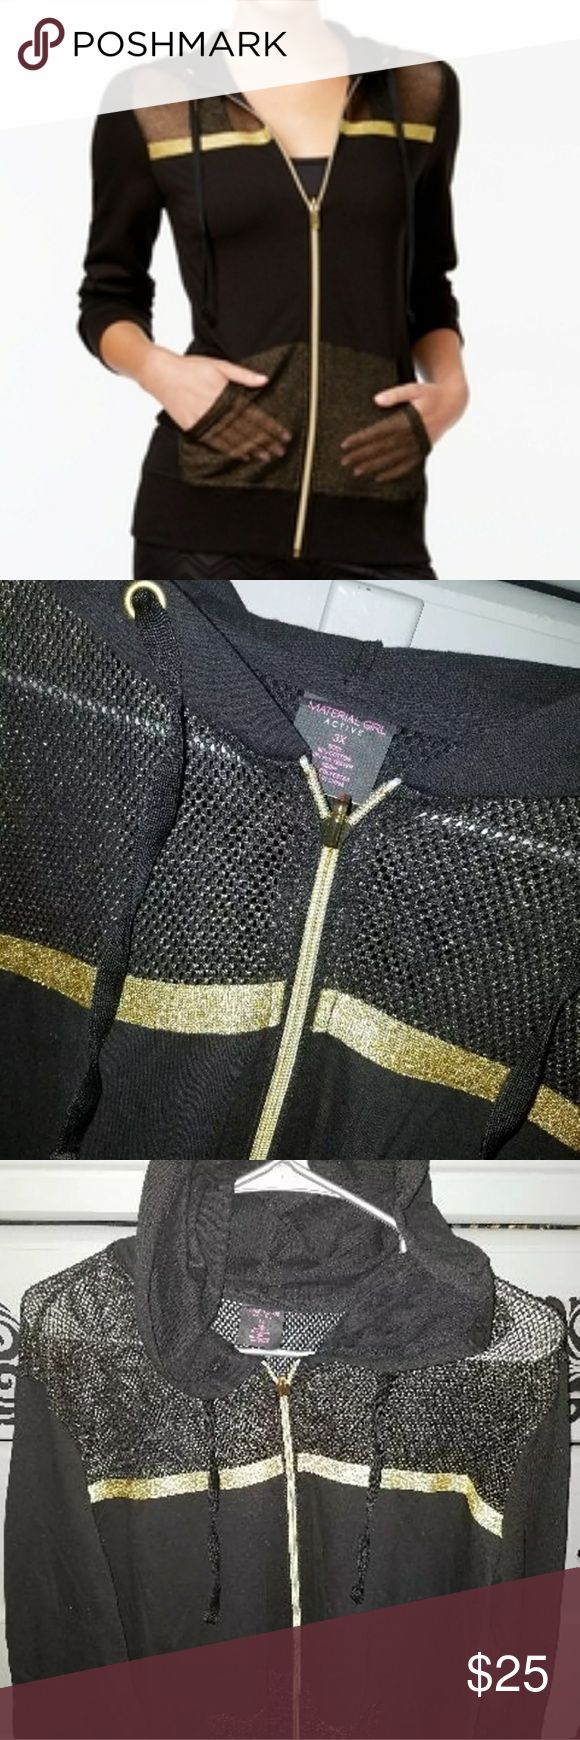 Material Girl WORKOUT Zip Hoodie ☆ Black & Gold BRAND NEW WITH TAGS ♡ BLACK & GOLD WITH MESH ZIP-UP WORKOUT HOODIE. Lightweight & airy, so to wear during or after a workout. ☆ The Pockets, Top Front & Back of jacket are constructed with a gold mesh like fabric. Not only does it look incredibly sexy, but it allows your body to breathe through the material. Size Women's 3x but seems to run a little smaller. Material Girl Tops Sweatshirts & Hoodies